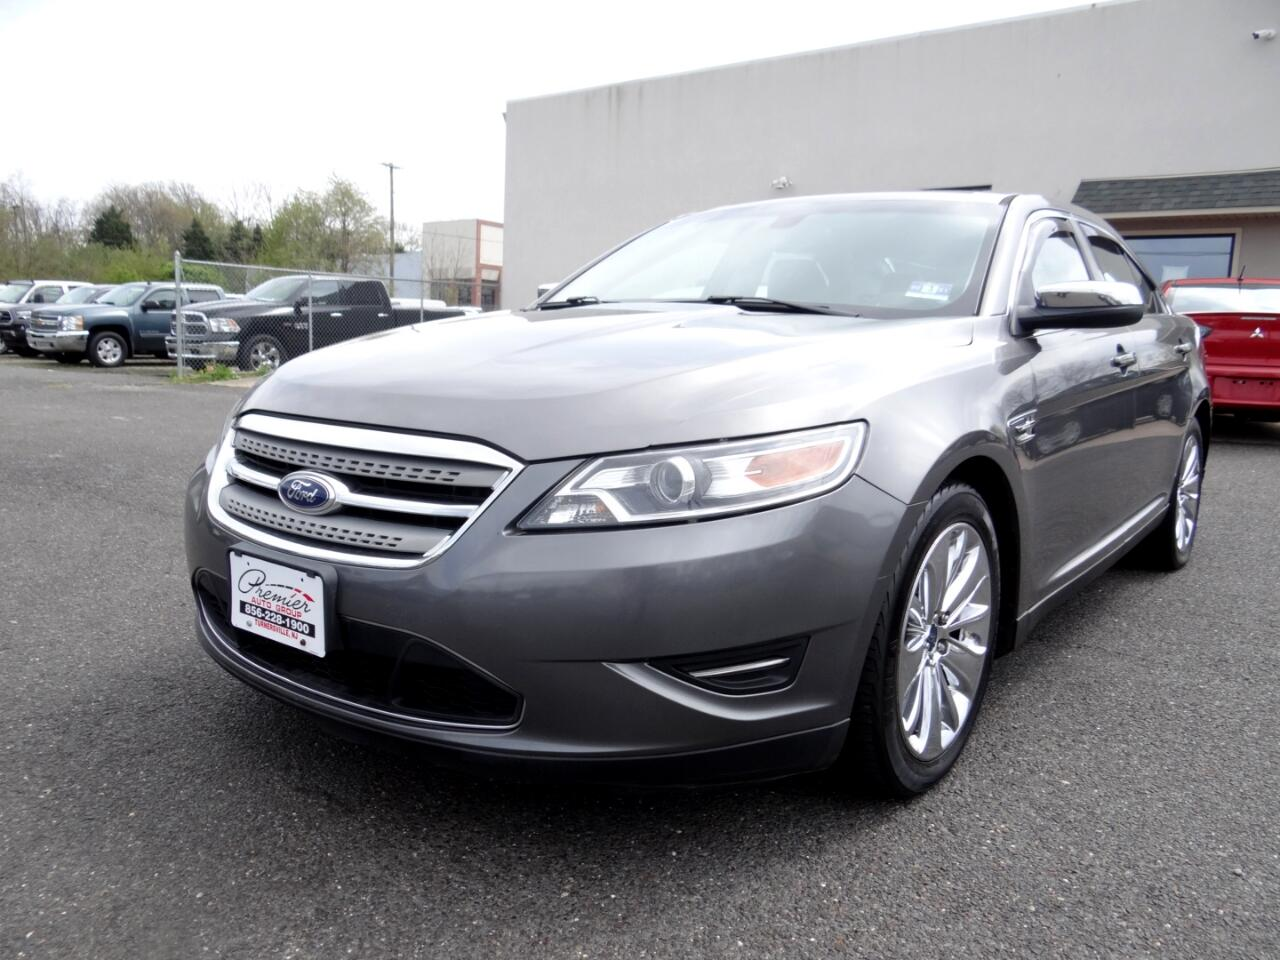 Ford Taurus 4dr Sdn Limited FWD 2011